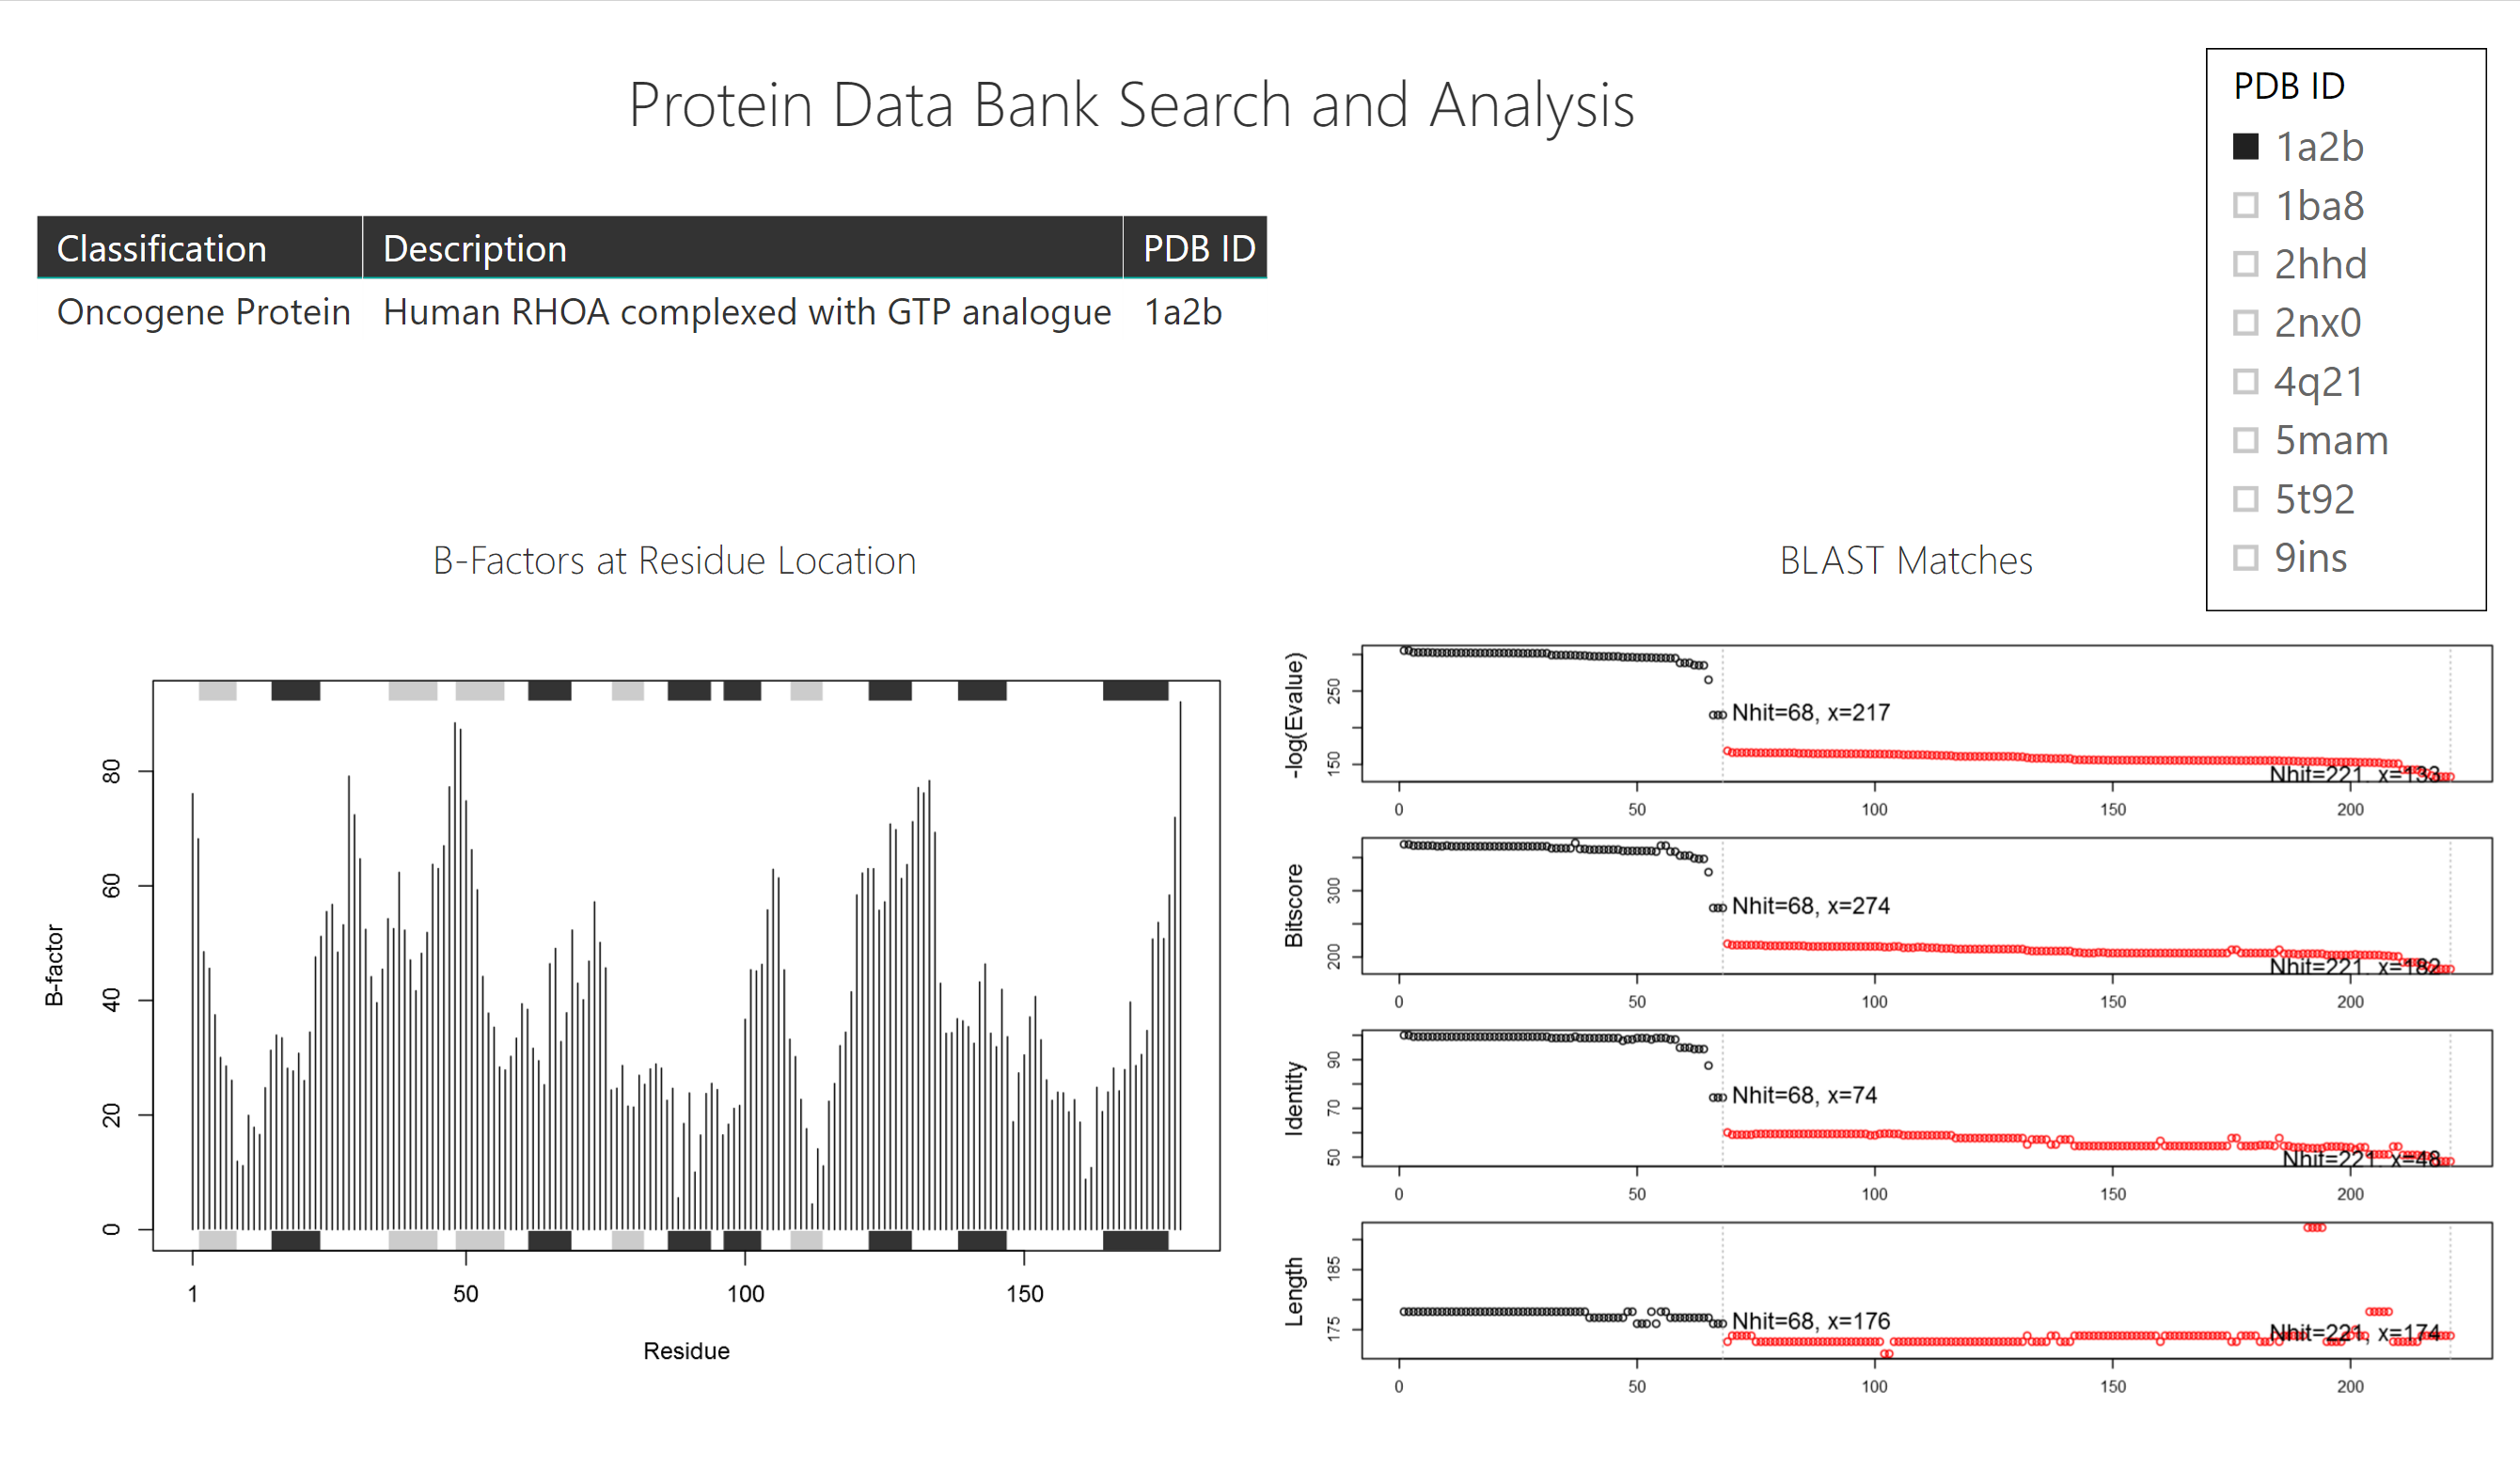 ProteinDataBank.png